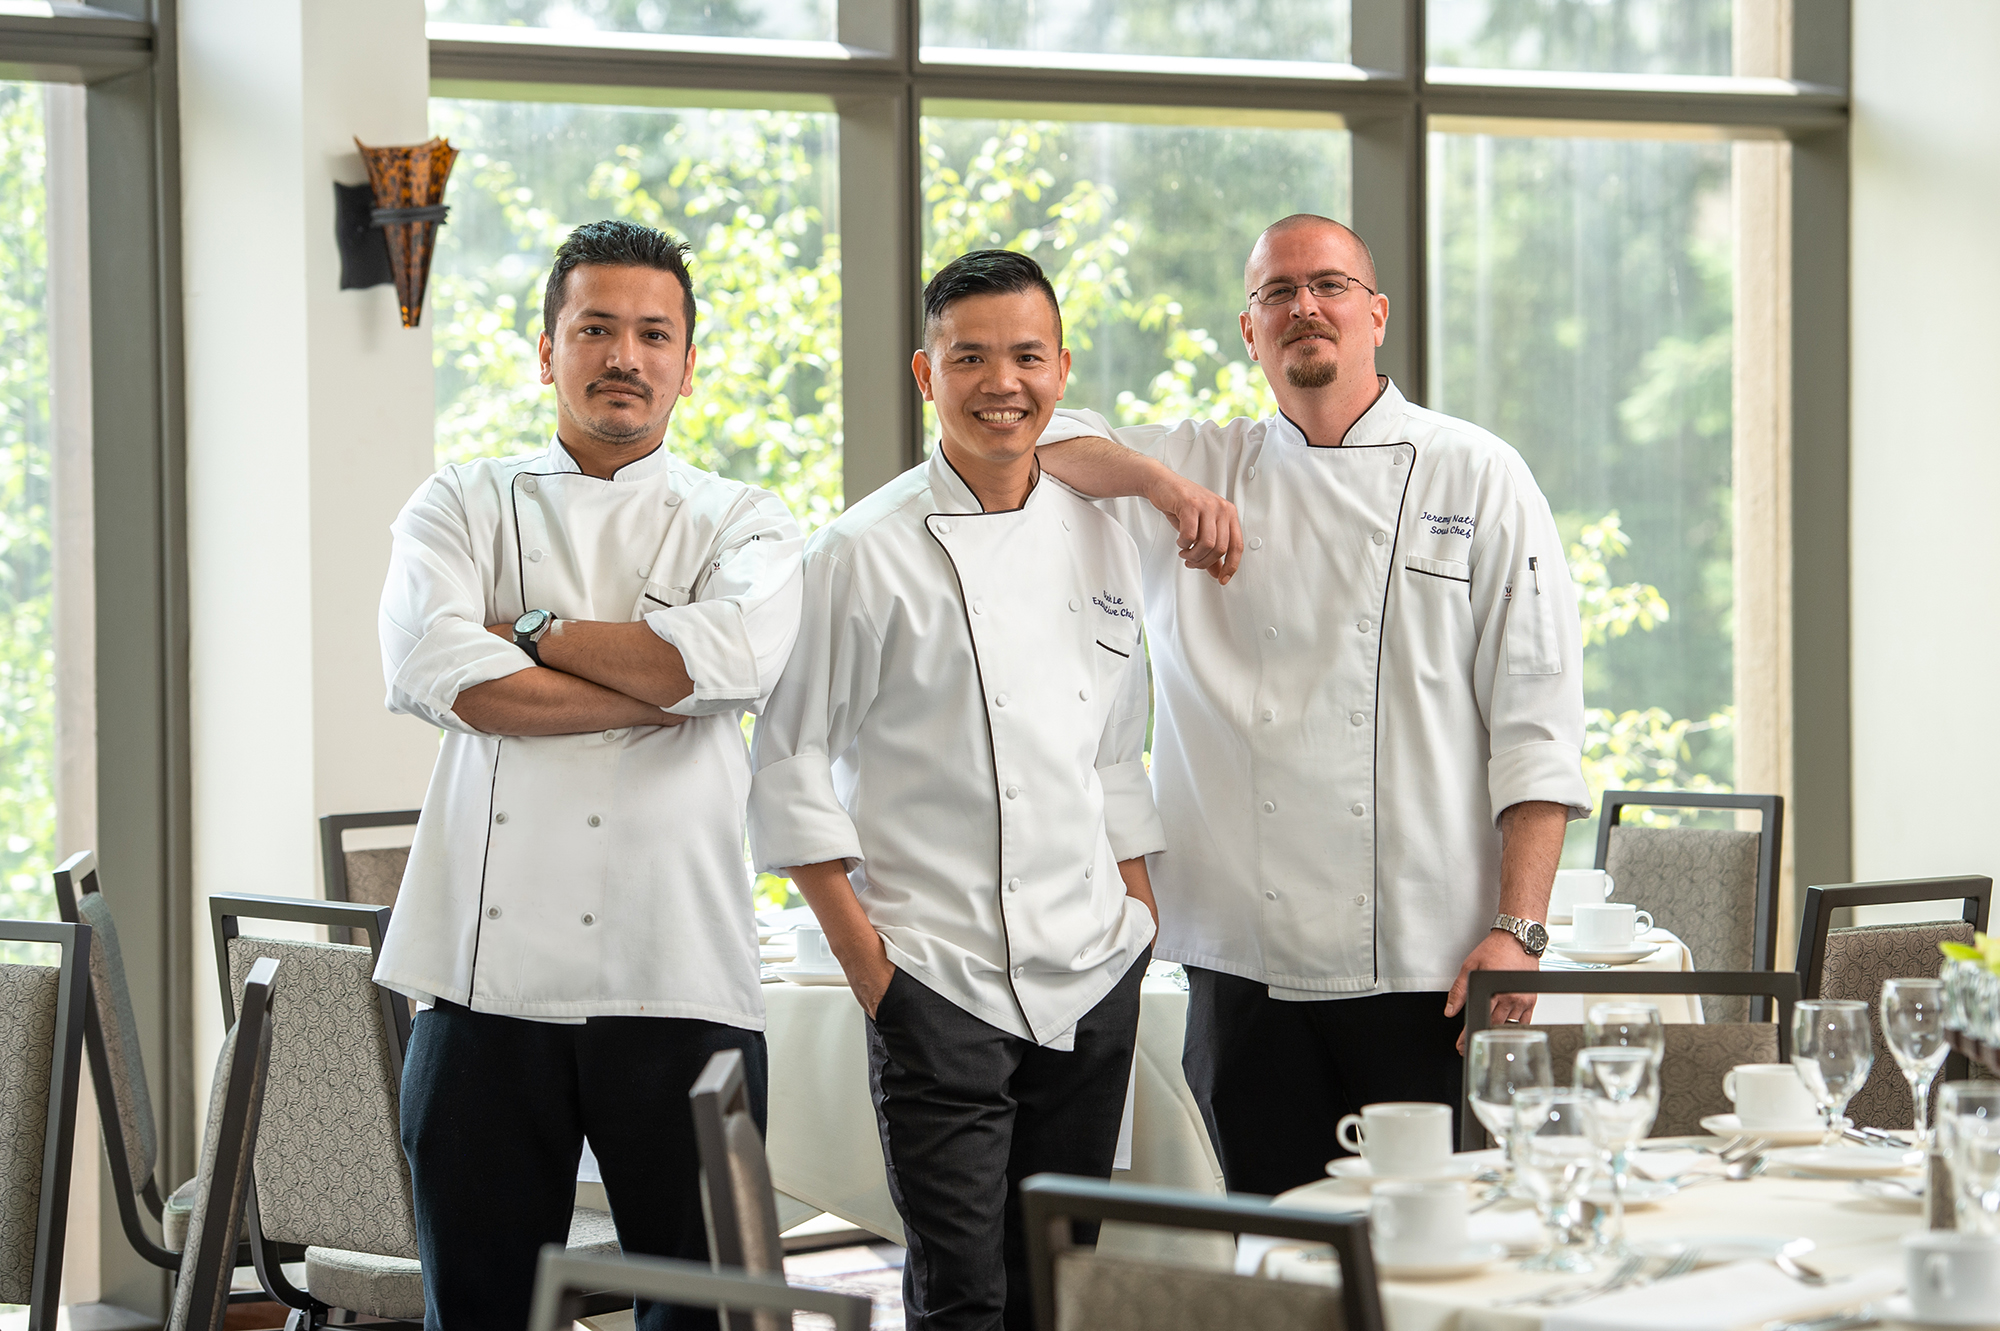 Hilton_Bellevue_LION_HF_Three_Chefs.jpg